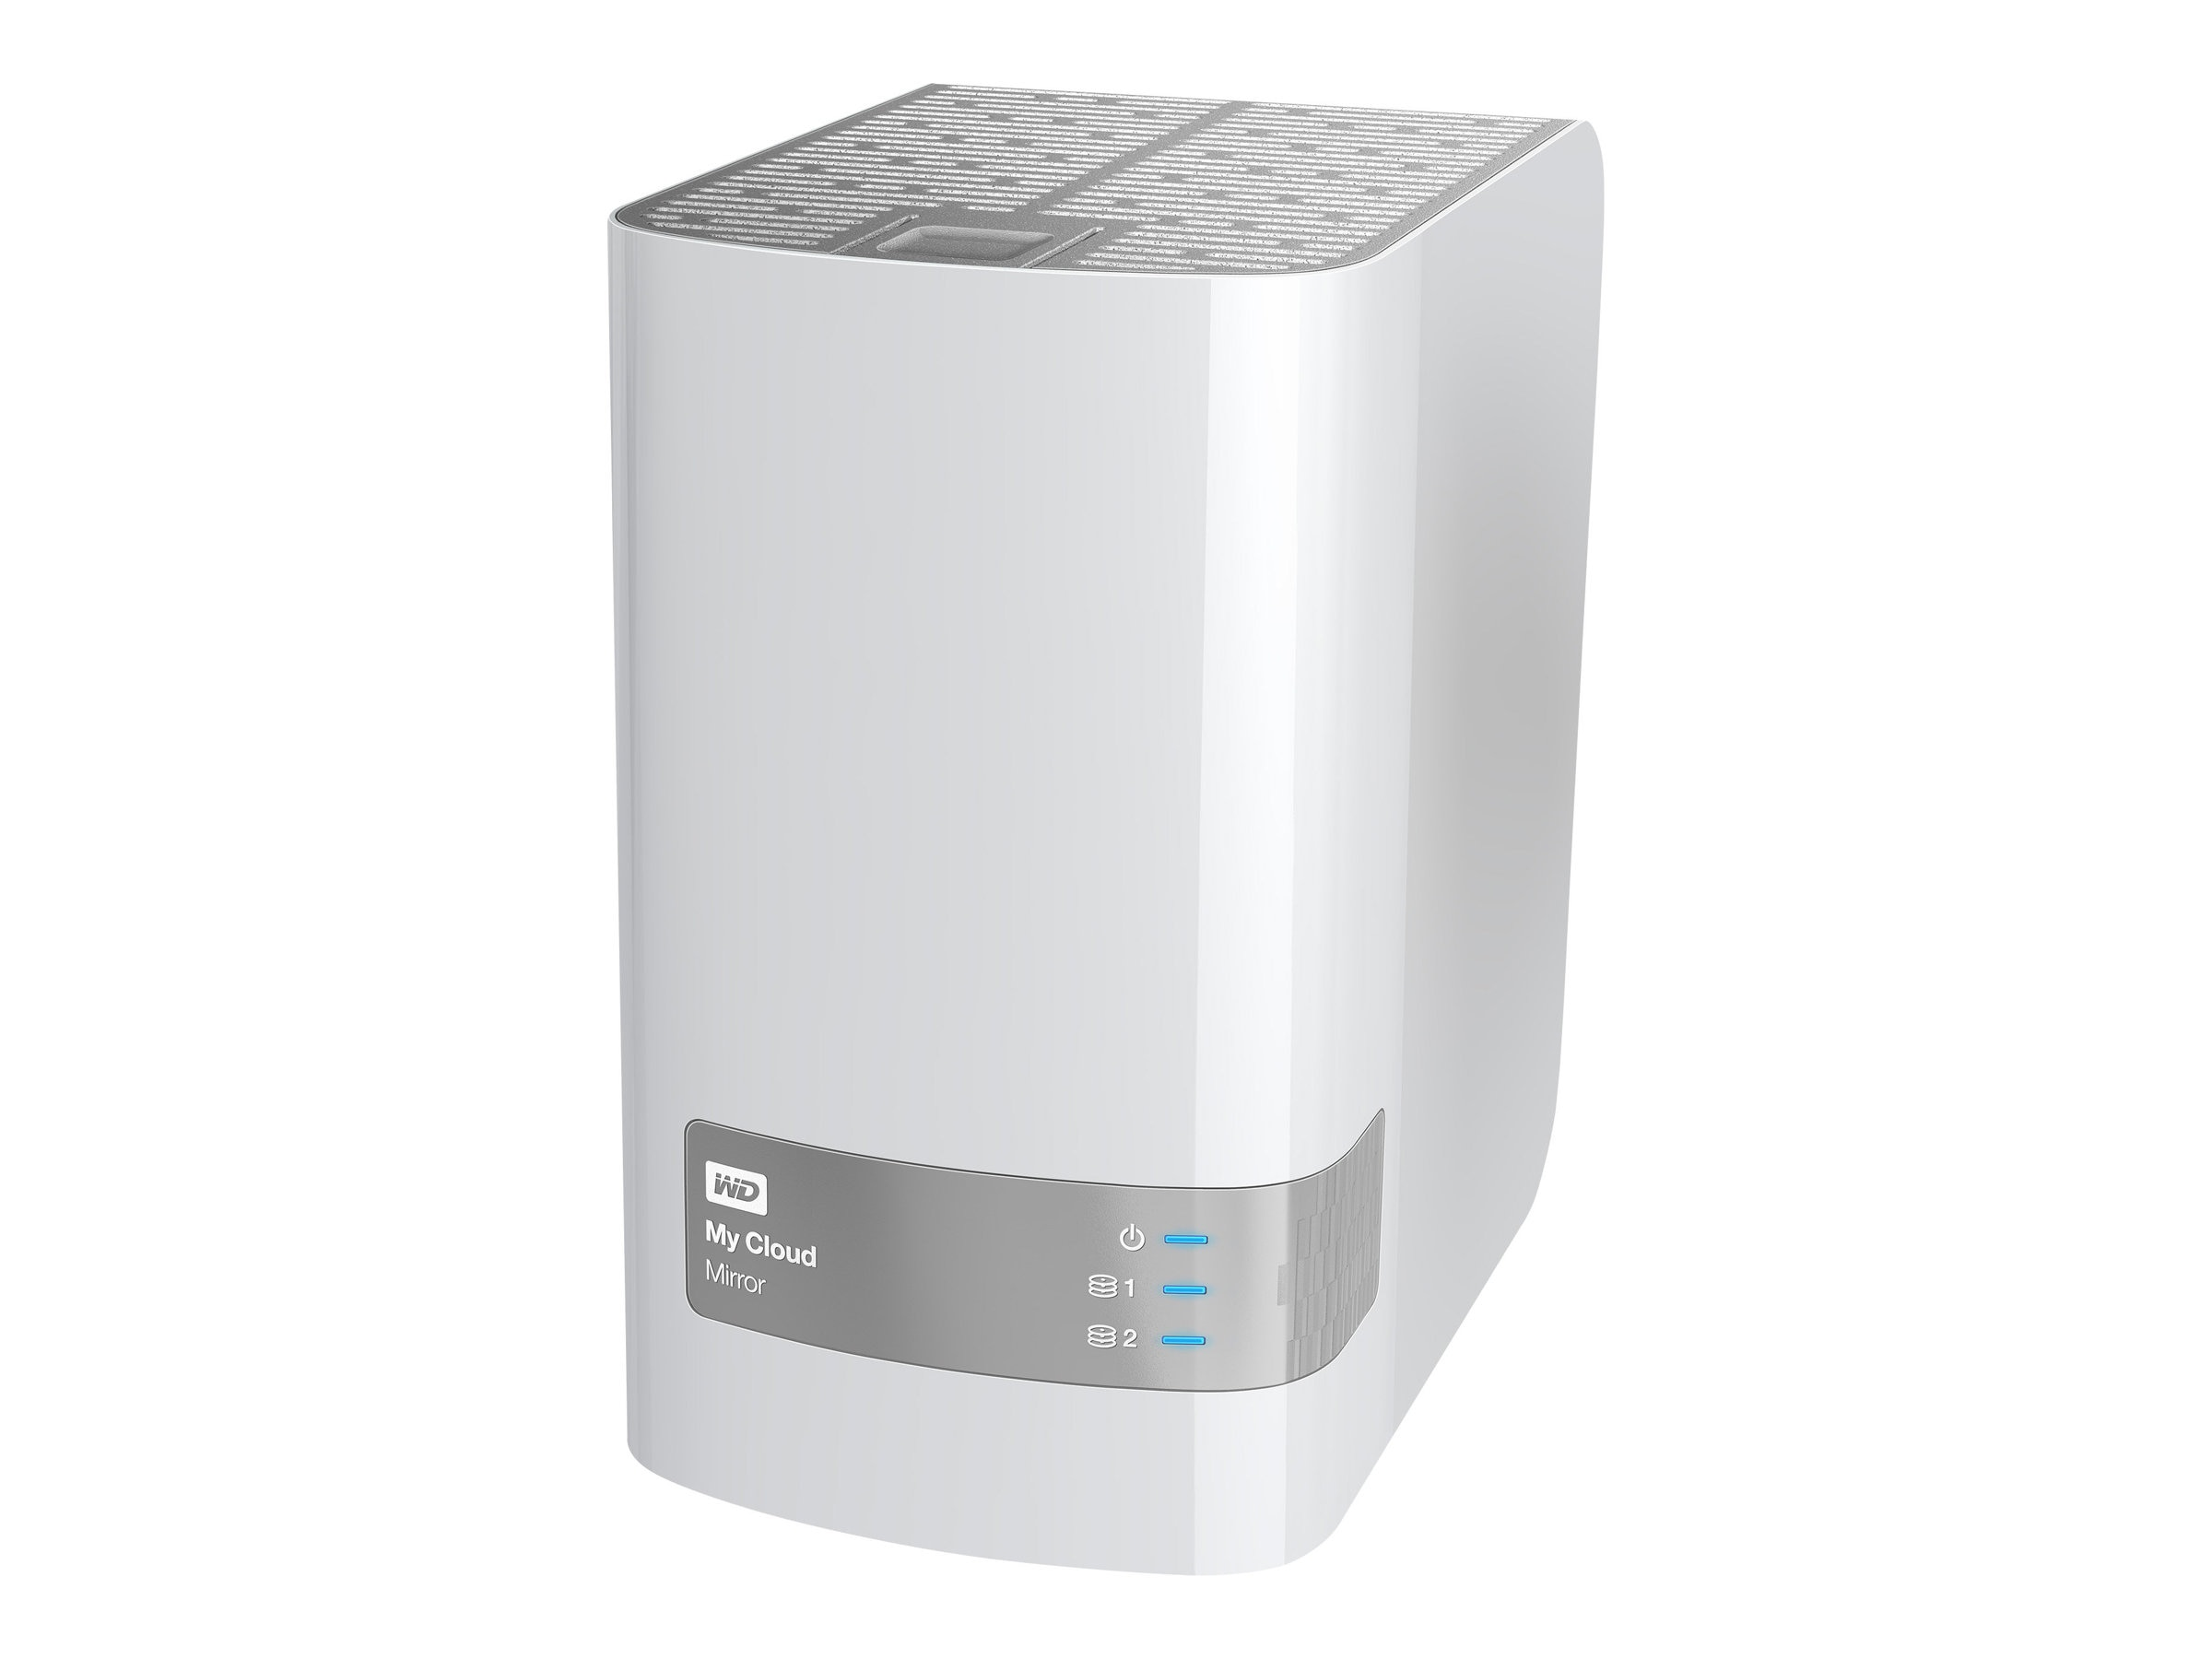 WD 4TB My Cloud Mirror Personal Cloud Storage, WDBZVM0040JWT-NESN, 17376821, Network Attached Storage